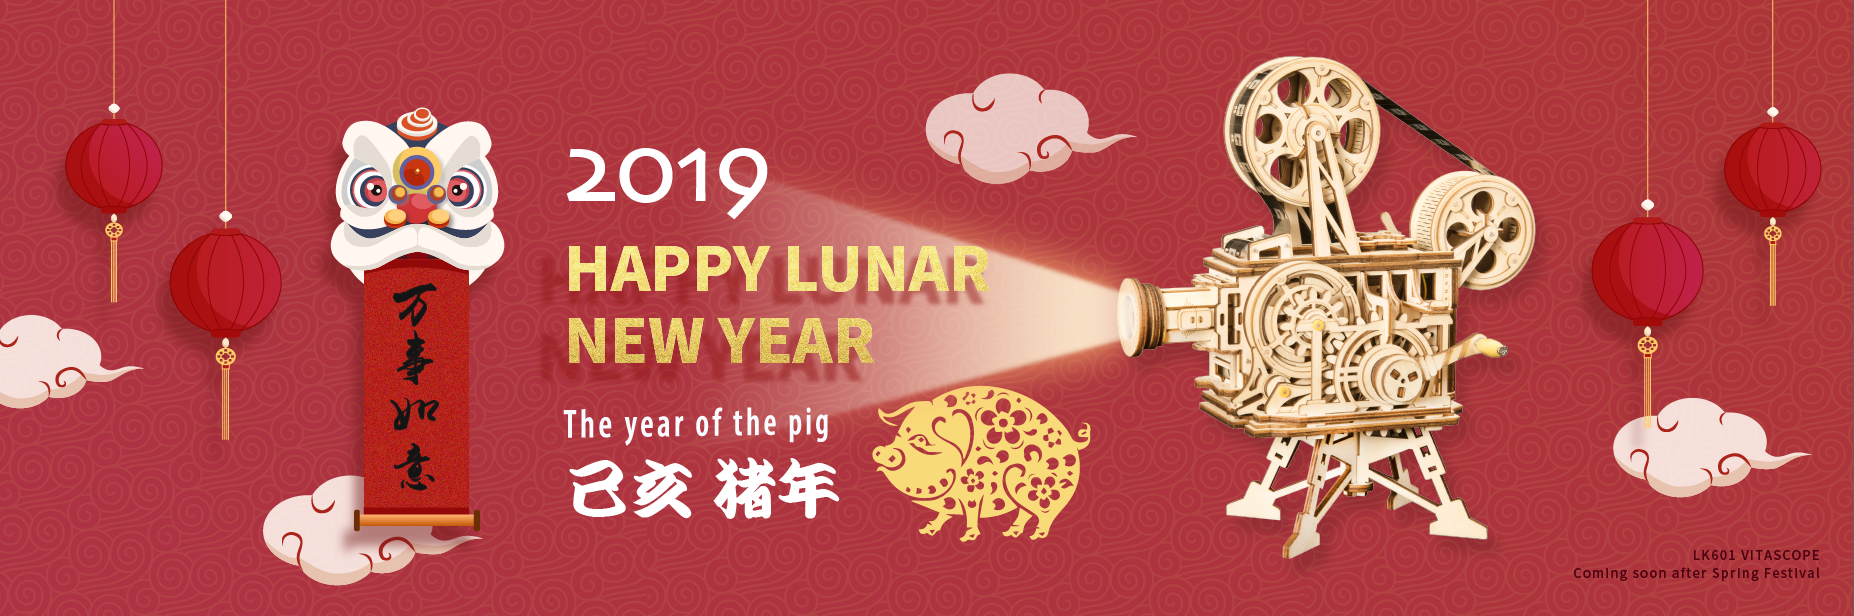 happy lunar new year 20196